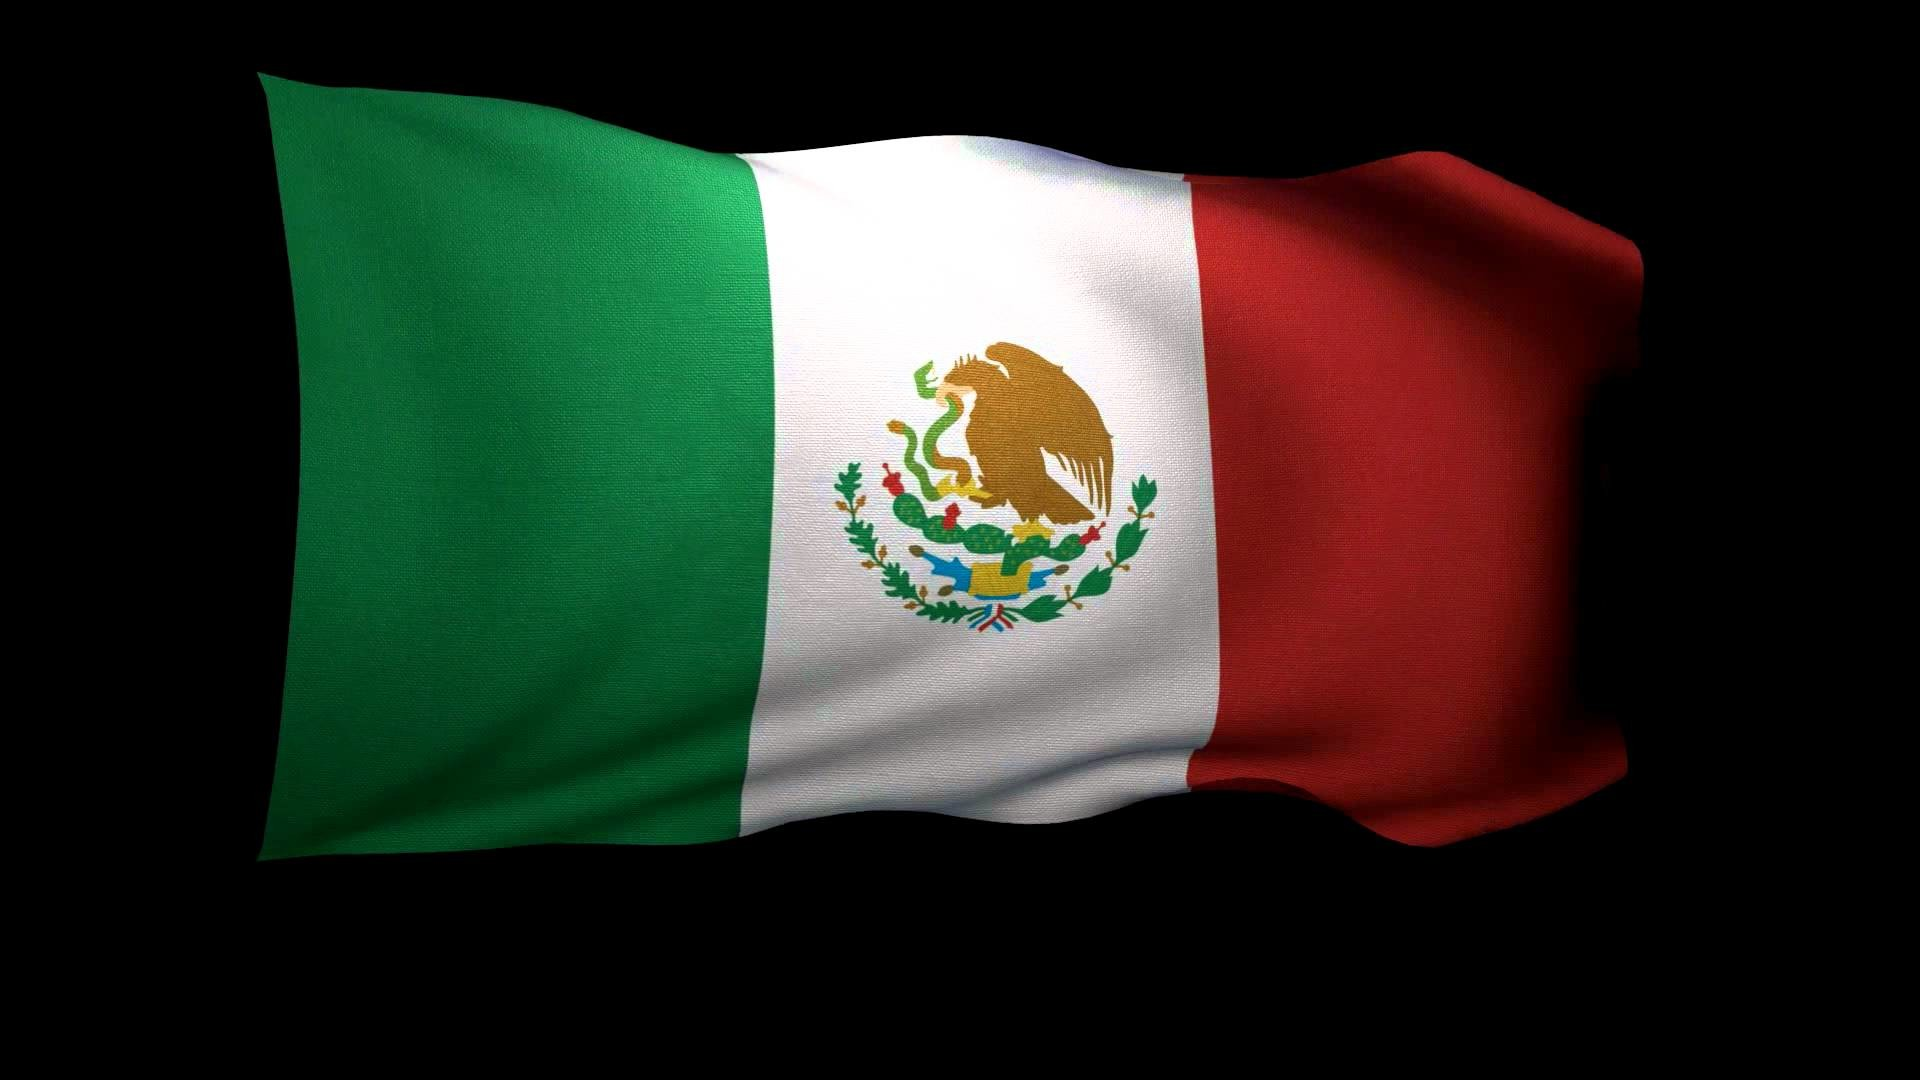 1920x1080 3D Rendering of the flag of Mexico waving in the wind .